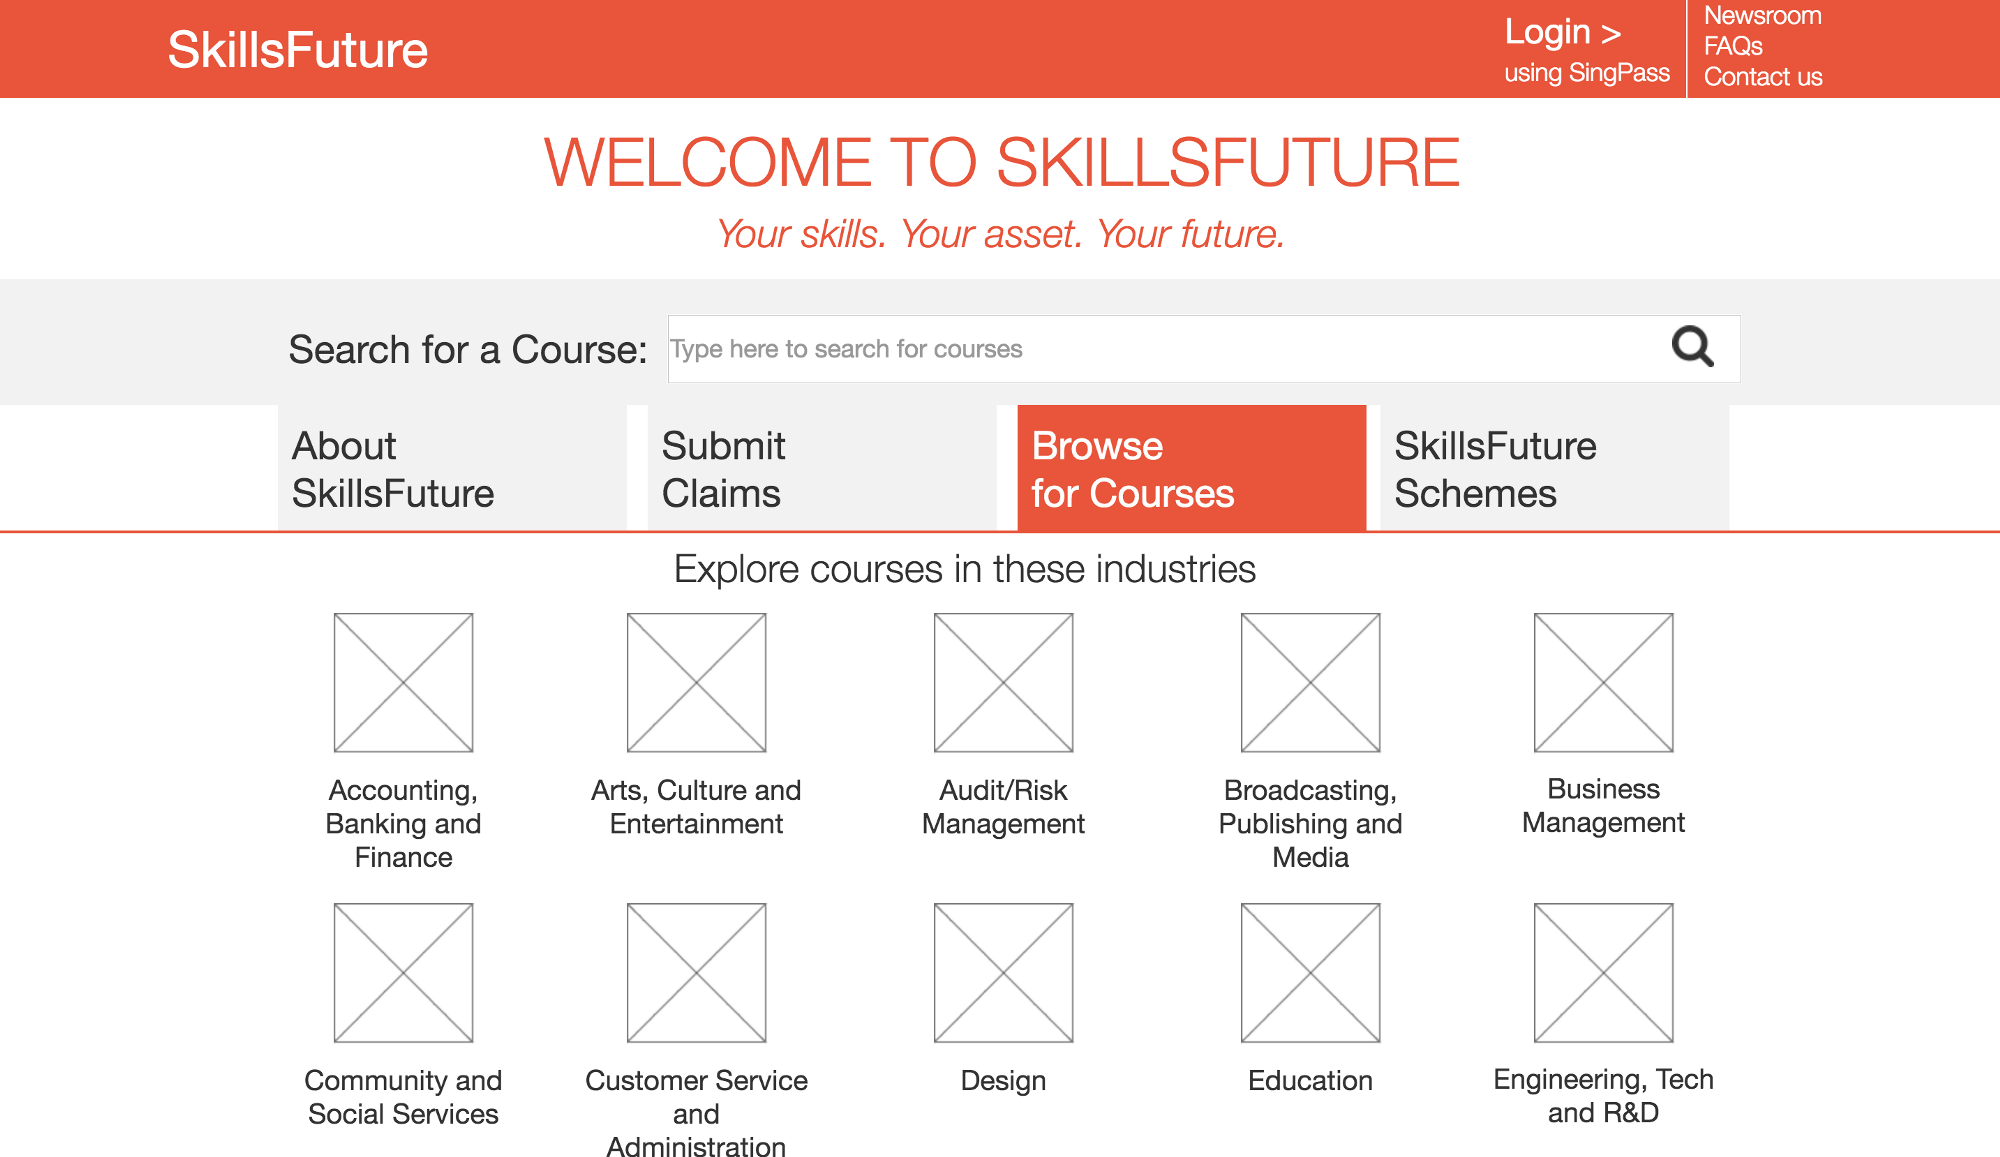 Skillsfuture m saleh osman new landing page with clear navigation to search or browse for courses and submitting claims pooptronica